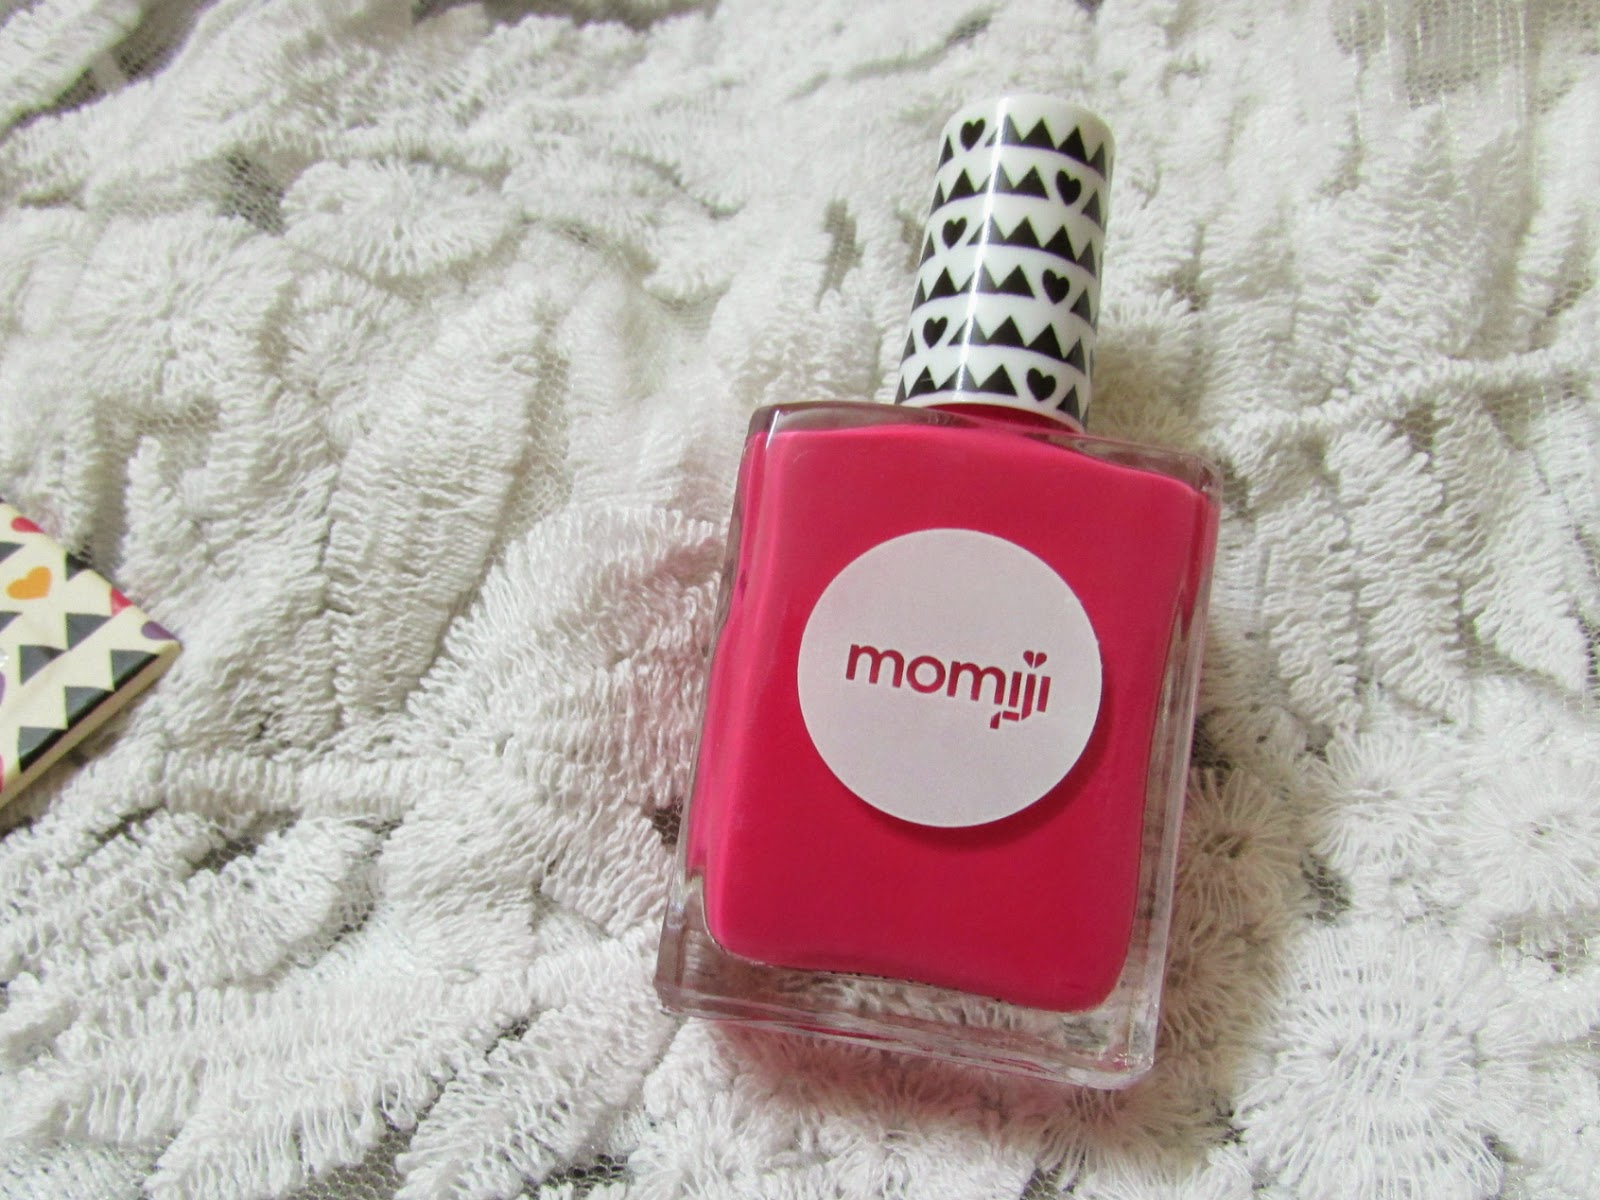 Momiji, Momiji dolls, Momiji nailpaints, Momiji nail varnish, Momiji lip balm, Momiji nail paint set, Momiji apple kiss lip balm, Momiji heartbeat lip balm, Momiji nailpaint price, Momiji lip balm price, Momiji heartbeat nailpaint price, Momiji apply kiss lip balm price, Momiji travel kit, Momiji travel kit review, Momiji travel kit price, Momiji nailpaint review, Momiji lip balm review, Momiji apple kiss lip balm review, Momiji heartbeat nail paint review, Momiji M&S , M&S M&S travel kit, M&S travel kit review, M&S travel kit price, M&S travel kit review and price, M&S Momiji travel kit, M&S Momiji travel kit price, M&S Momiji travel kit review, Momiji travel kit price and review